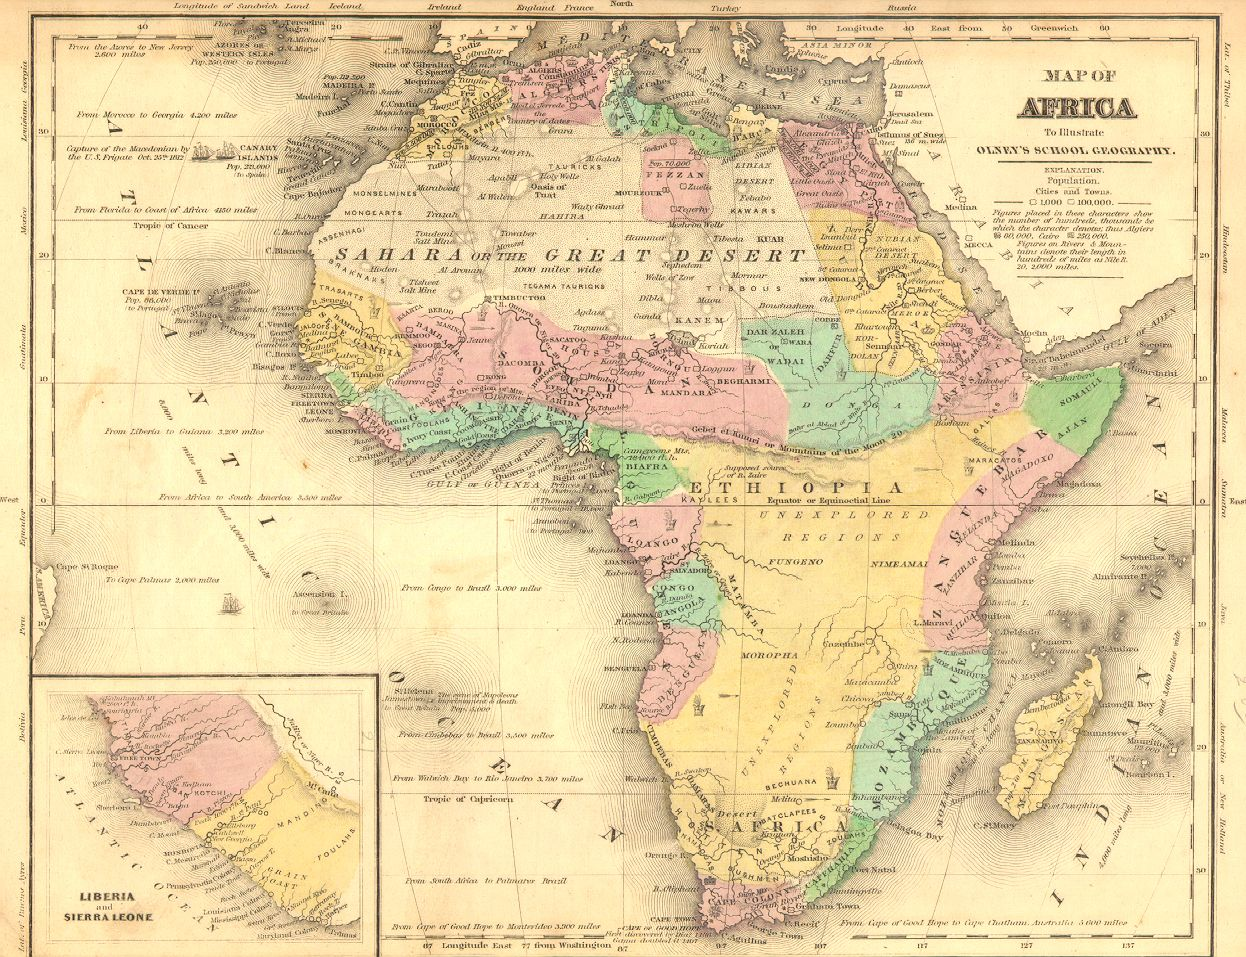 Map of Africa in Olney's Geography. George E. Sherman ... Map Of Ancient Africa on geographical map of africa, current map of africa, blank map of africa, map of the founding of rome, map of africa with countries, climate map of africa, map of medieval africa, map of identity, map of contemporary africa, big map of africa, map of north america, map of cush, map of italian africa, map of norway africa, map of mesopotamia, map of china, map of middle east, map of east africa, map of earth africa, map of historical africa,